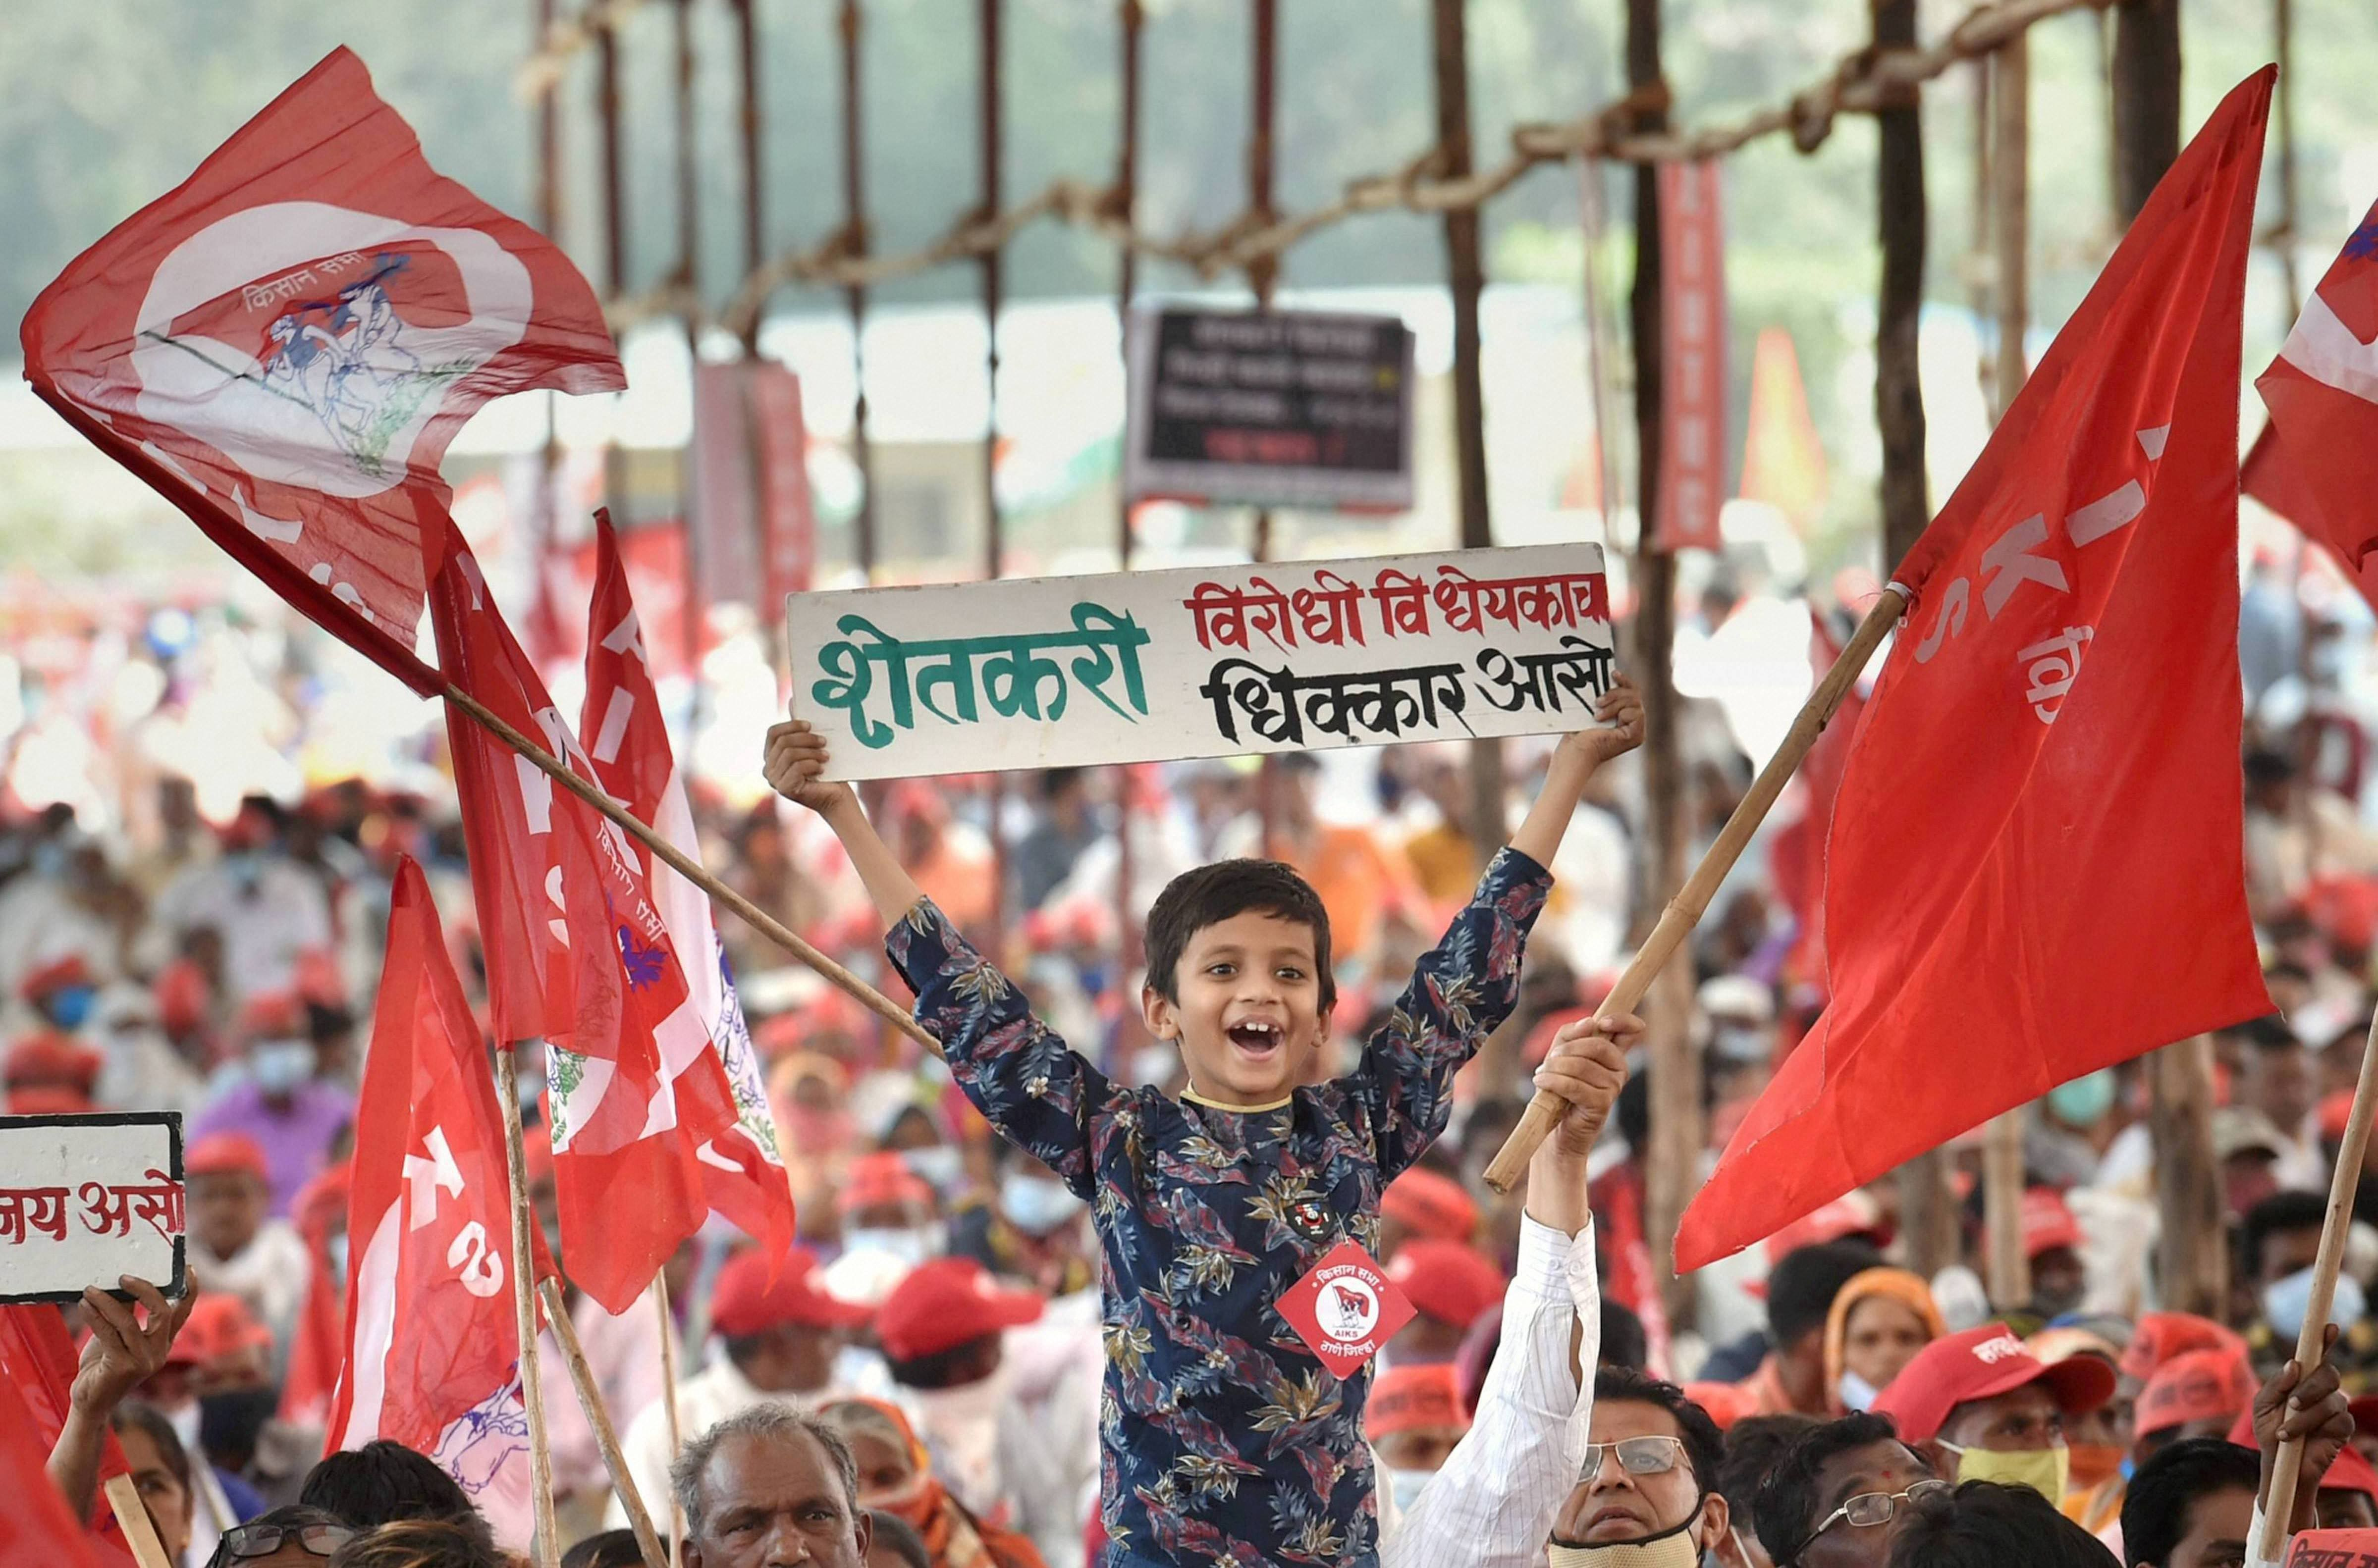 Nearly 600 Teaching and Non-teaching Staff in Mumbai Raise Voice Against Centre's New Education Policy